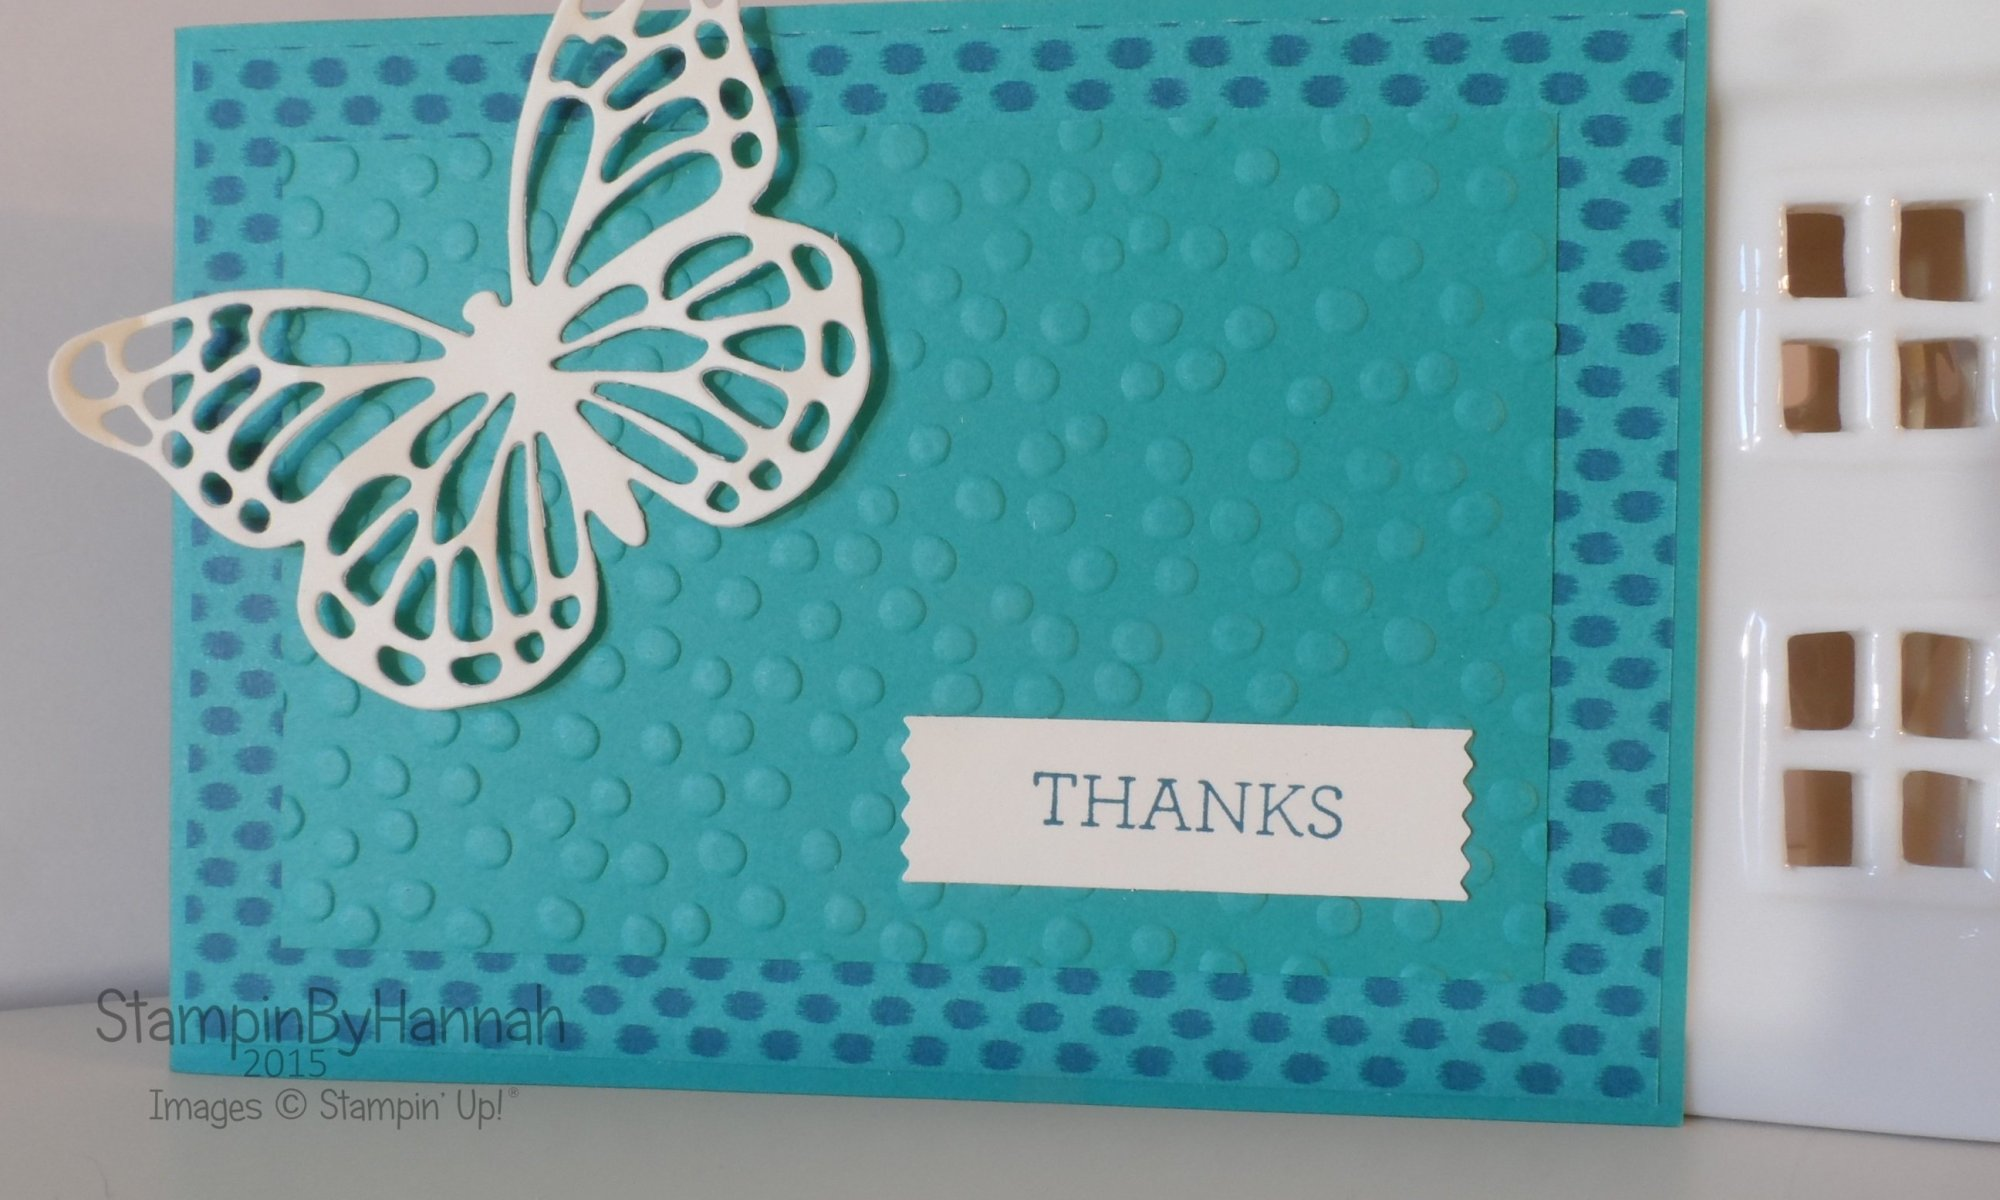 Stampin' Up! Butterfly thinlit Precision base plate how to